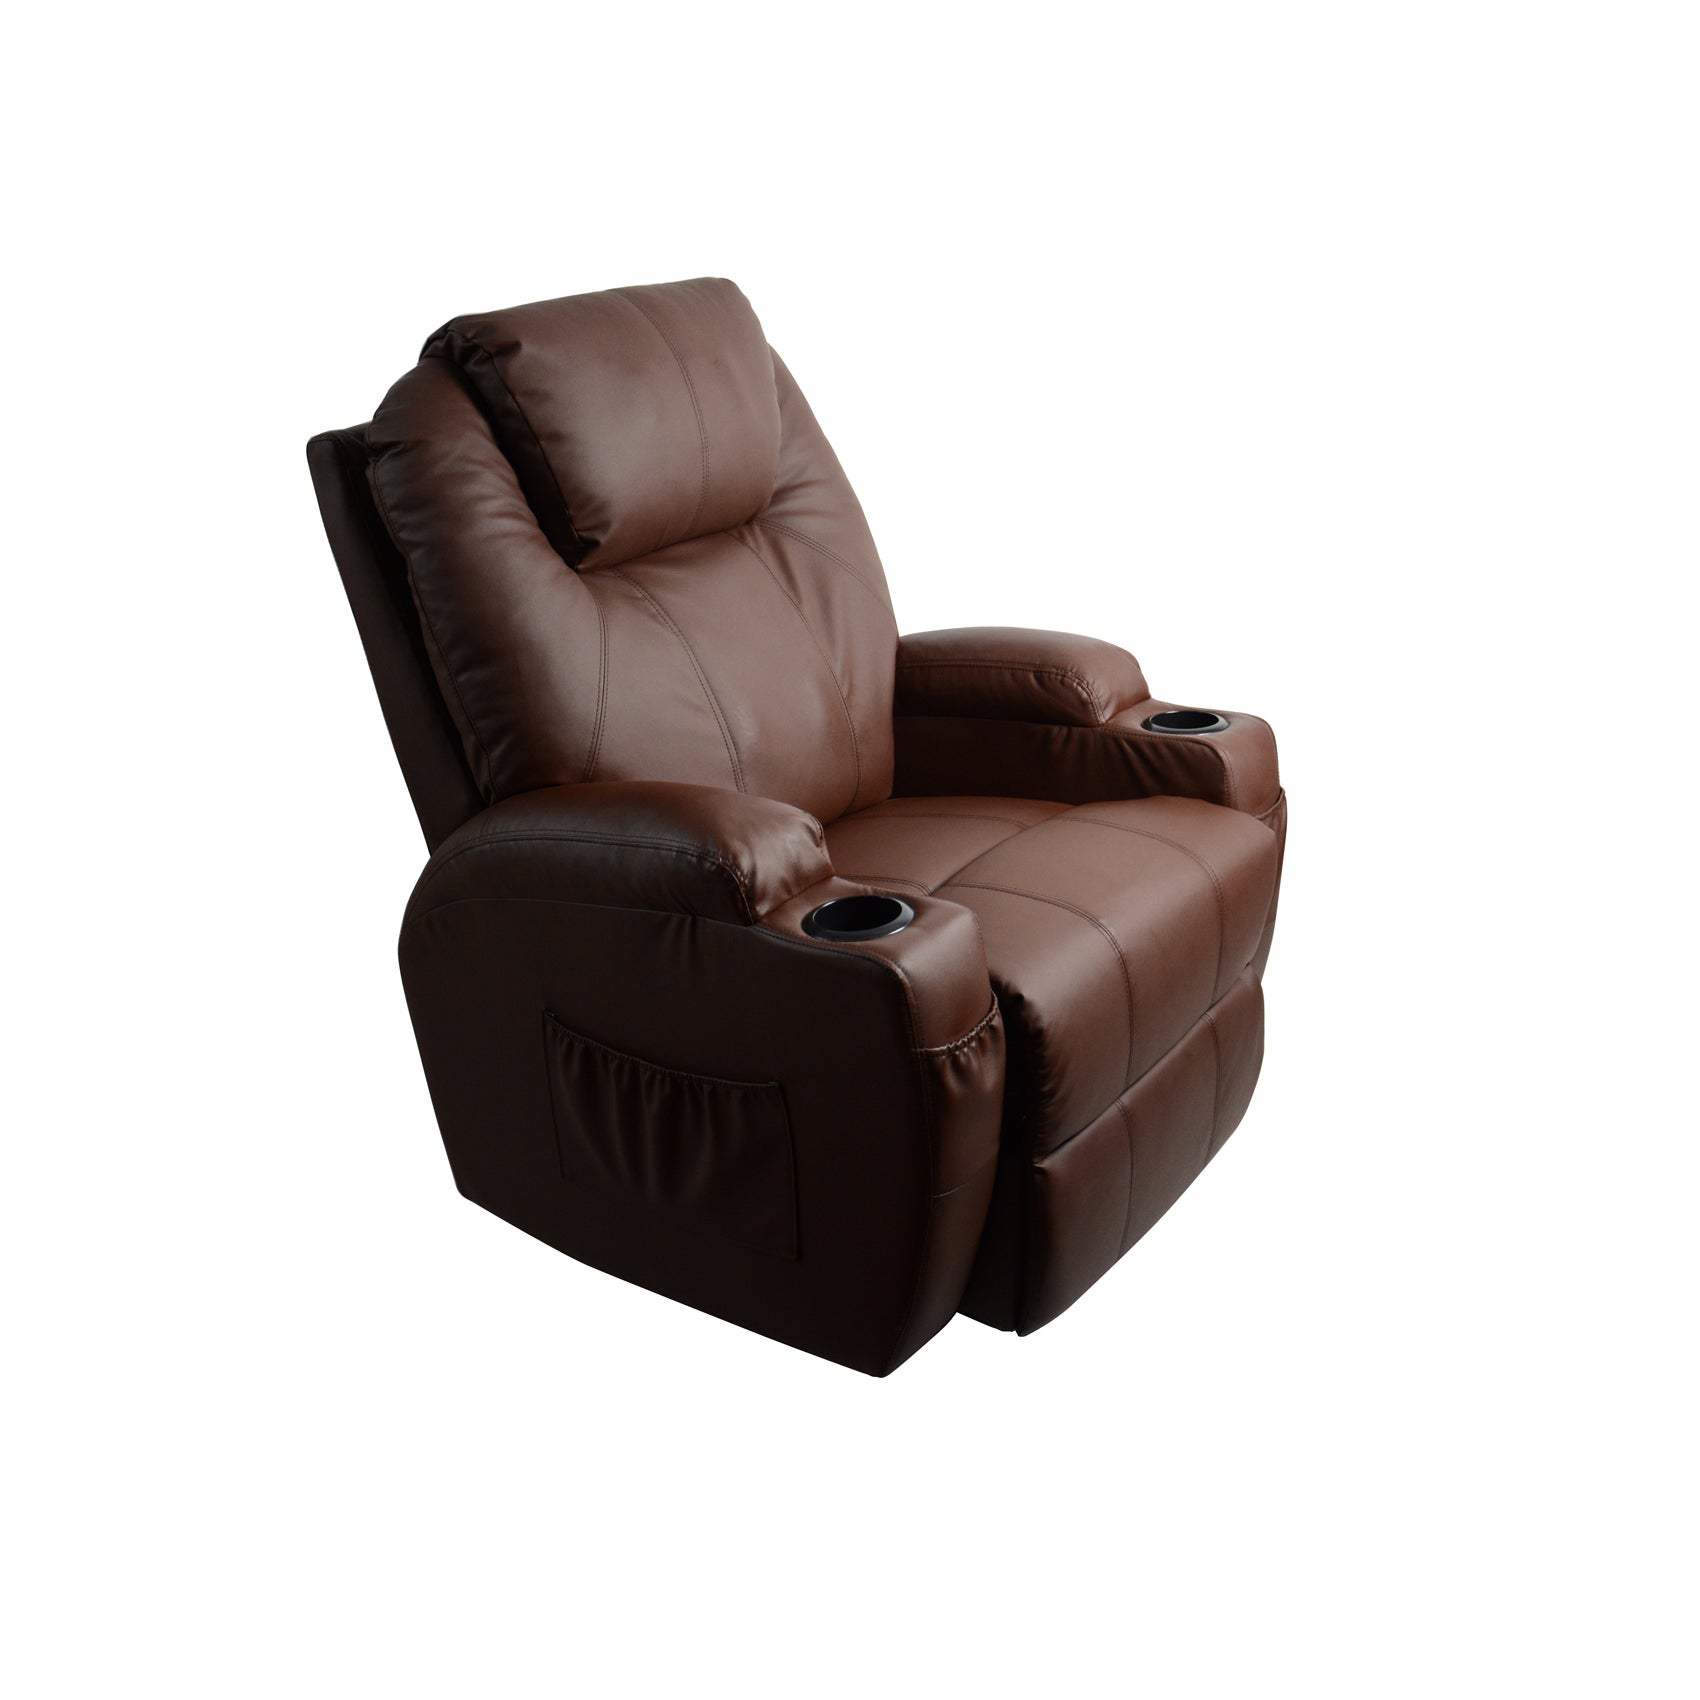 Superb Mcombo Brown Massage Recliner Vibrating Sofa Heated Leather Unemploymentrelief Wooden Chair Designs For Living Room Unemploymentrelieforg